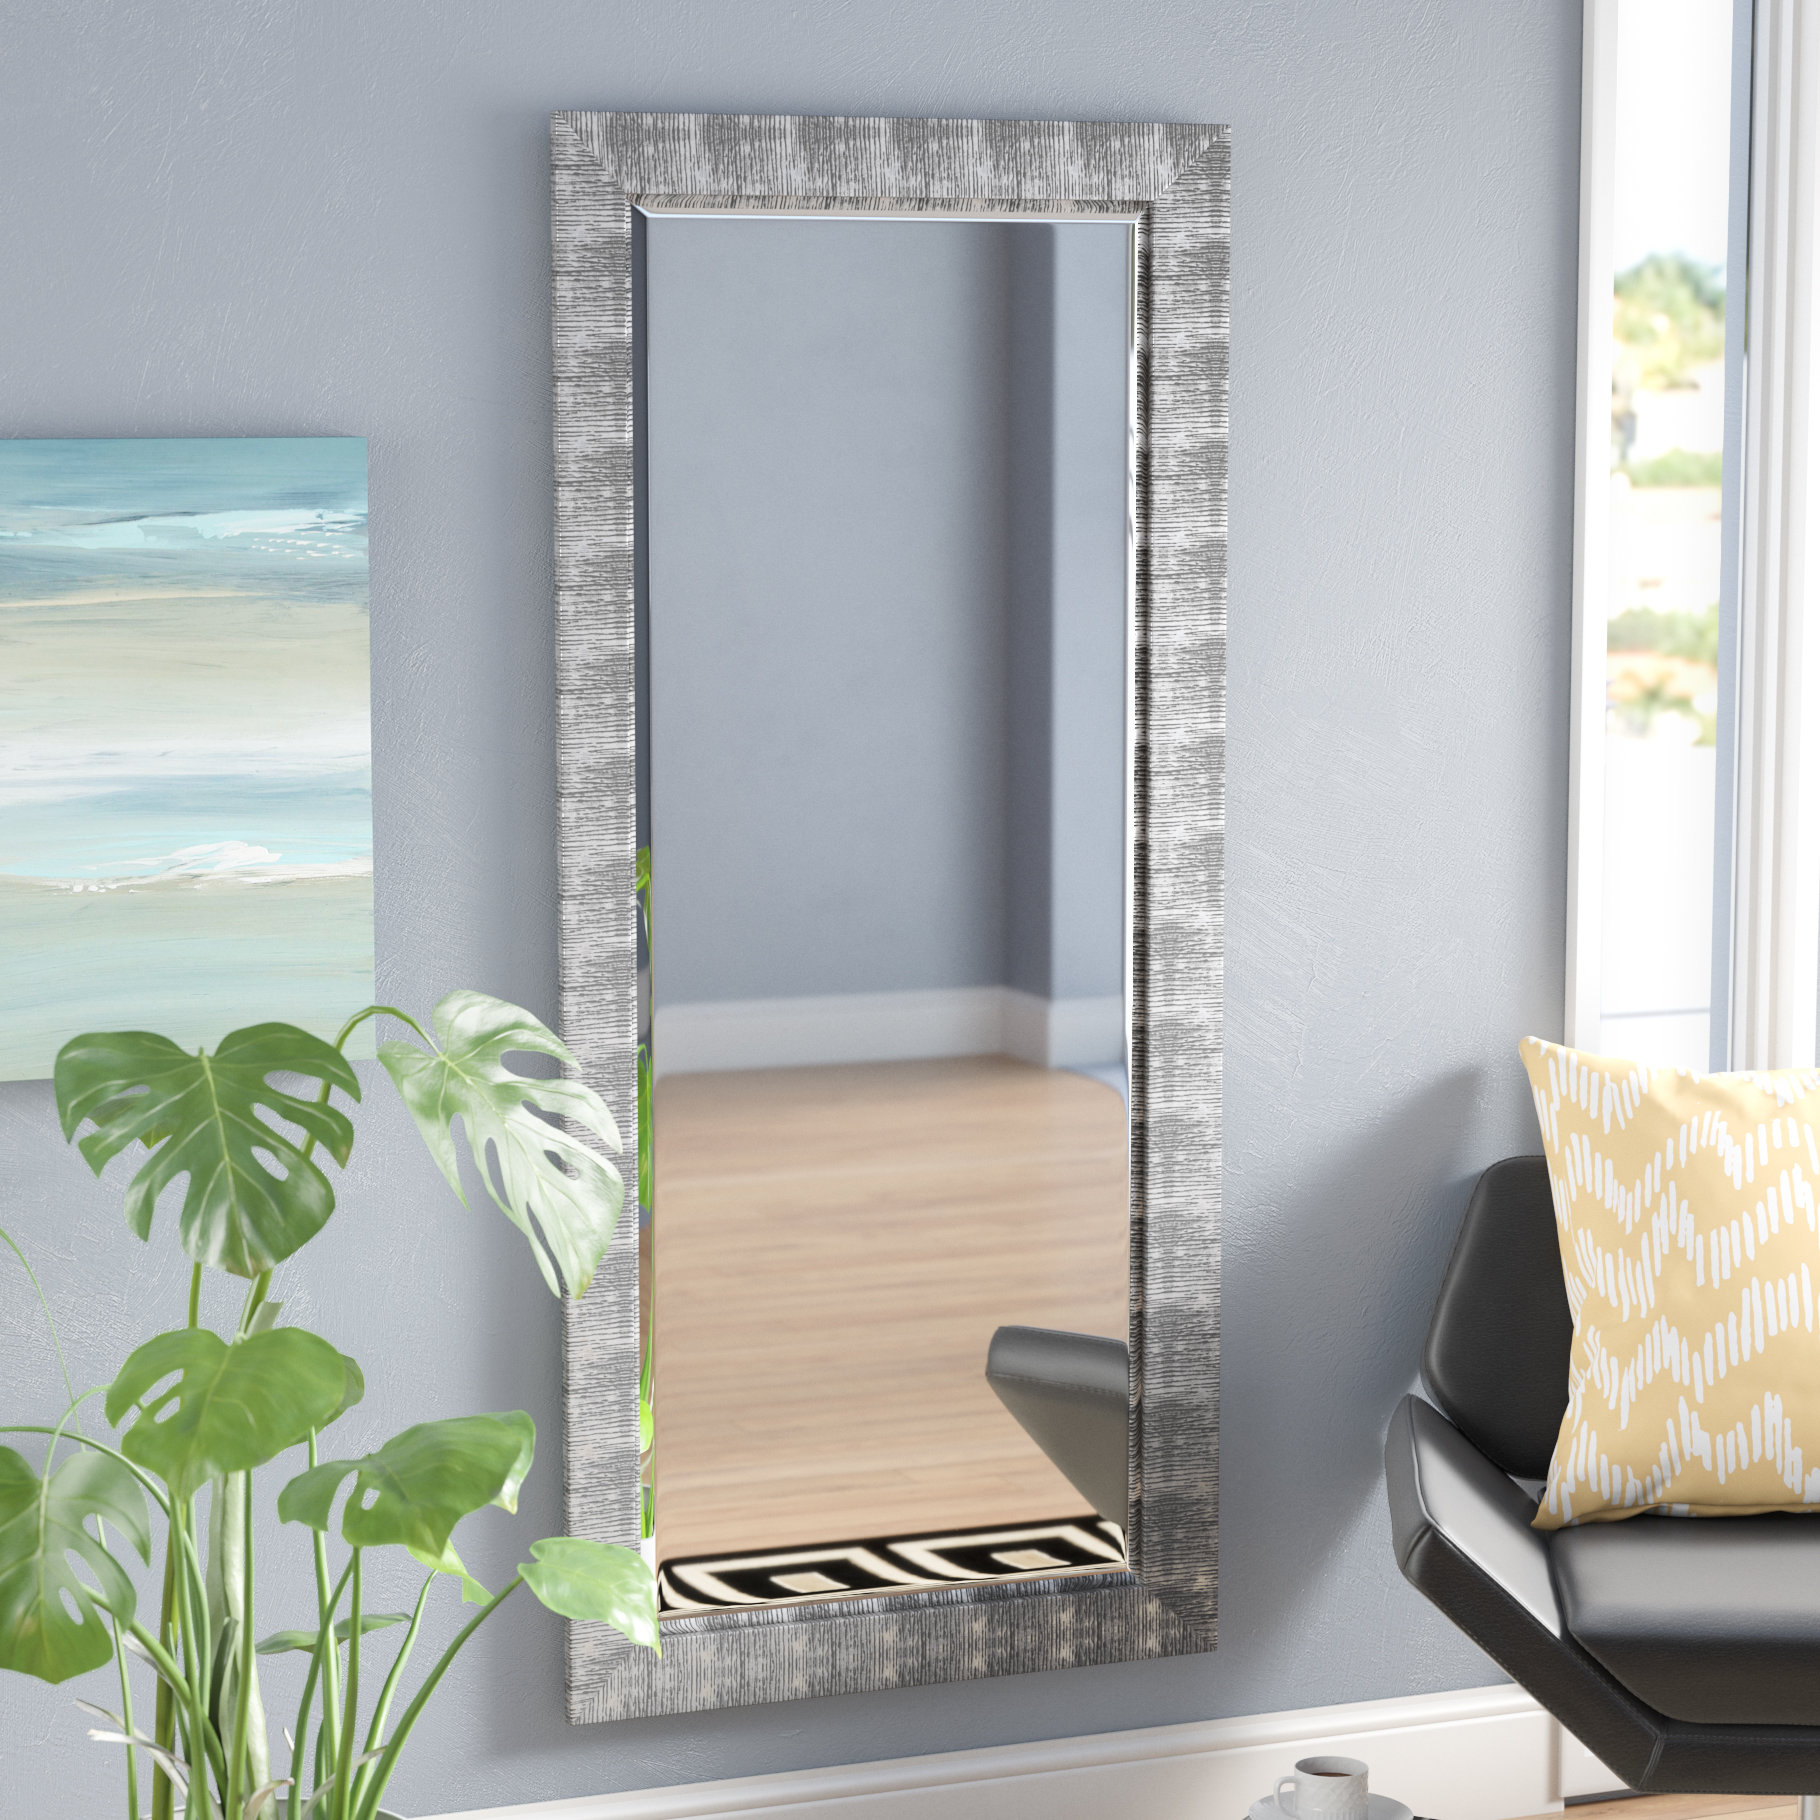 Grain Texture Modern & Contemporary Beveled Wall Mirror Inside Modern & Contemporary Beveled Accent Mirrors (View 18 of 20)